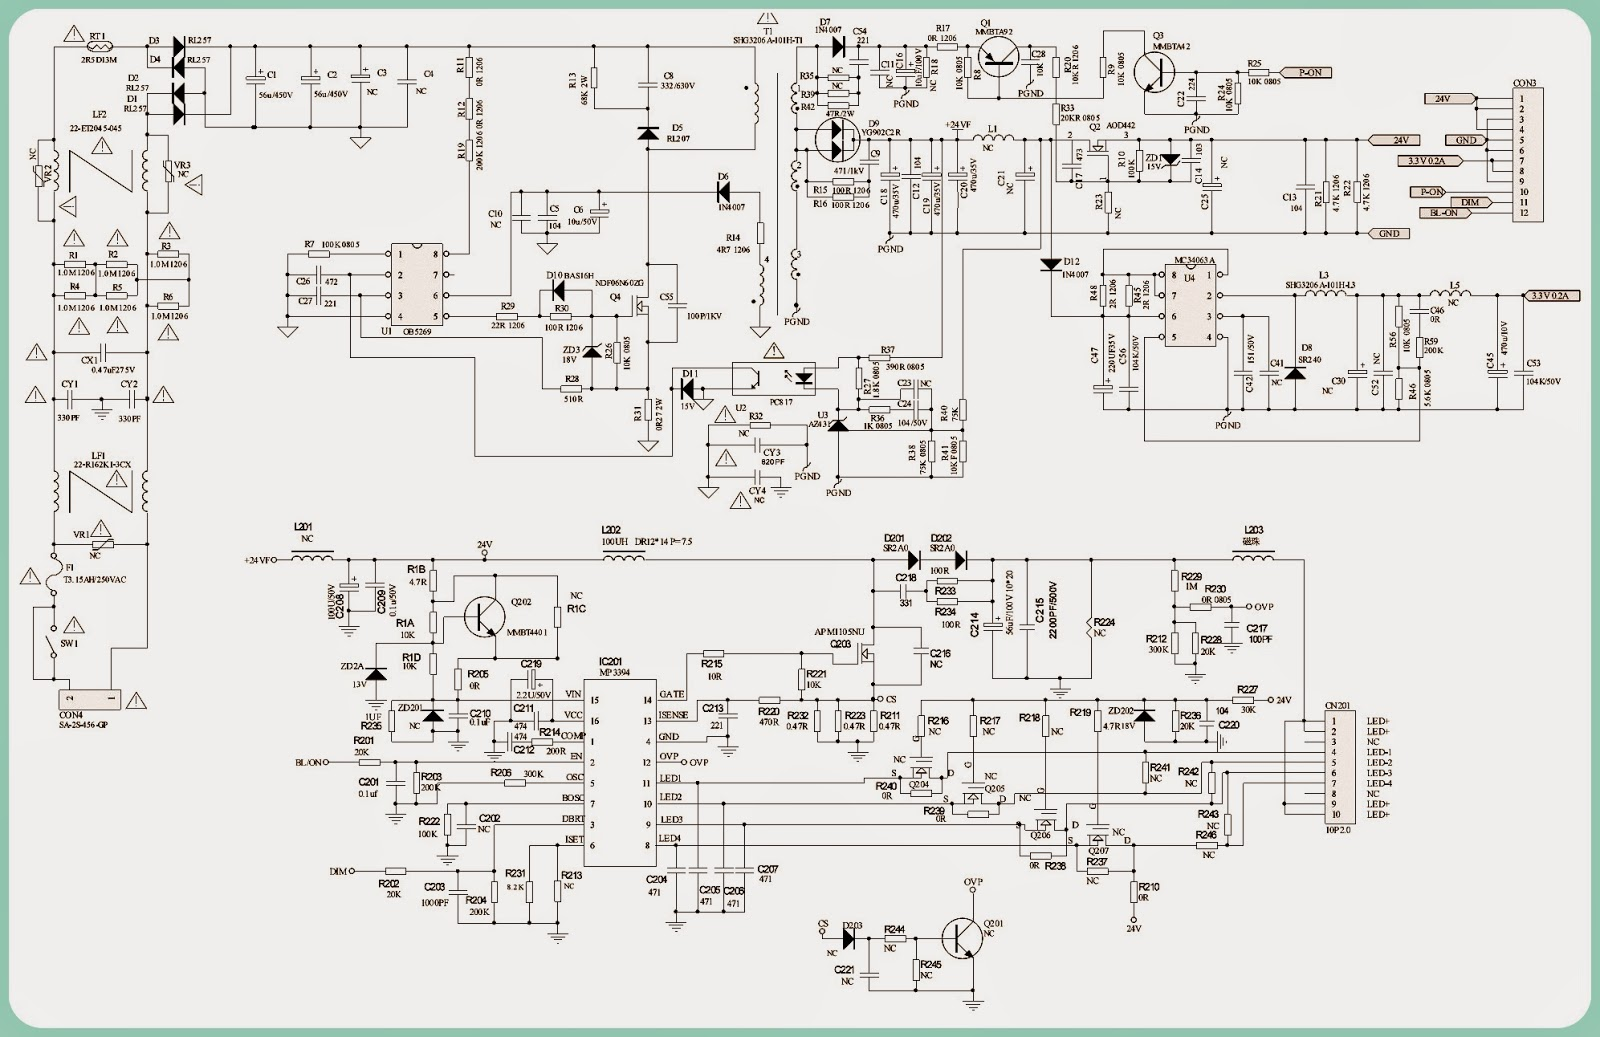 Vizio 60 4k wiring diagram wire data luxury vizio remote diagram ensign electrical diagram ideas rh piotomar info vizio p652ui b2 70 inch led smart tv swarovskicordoba Images